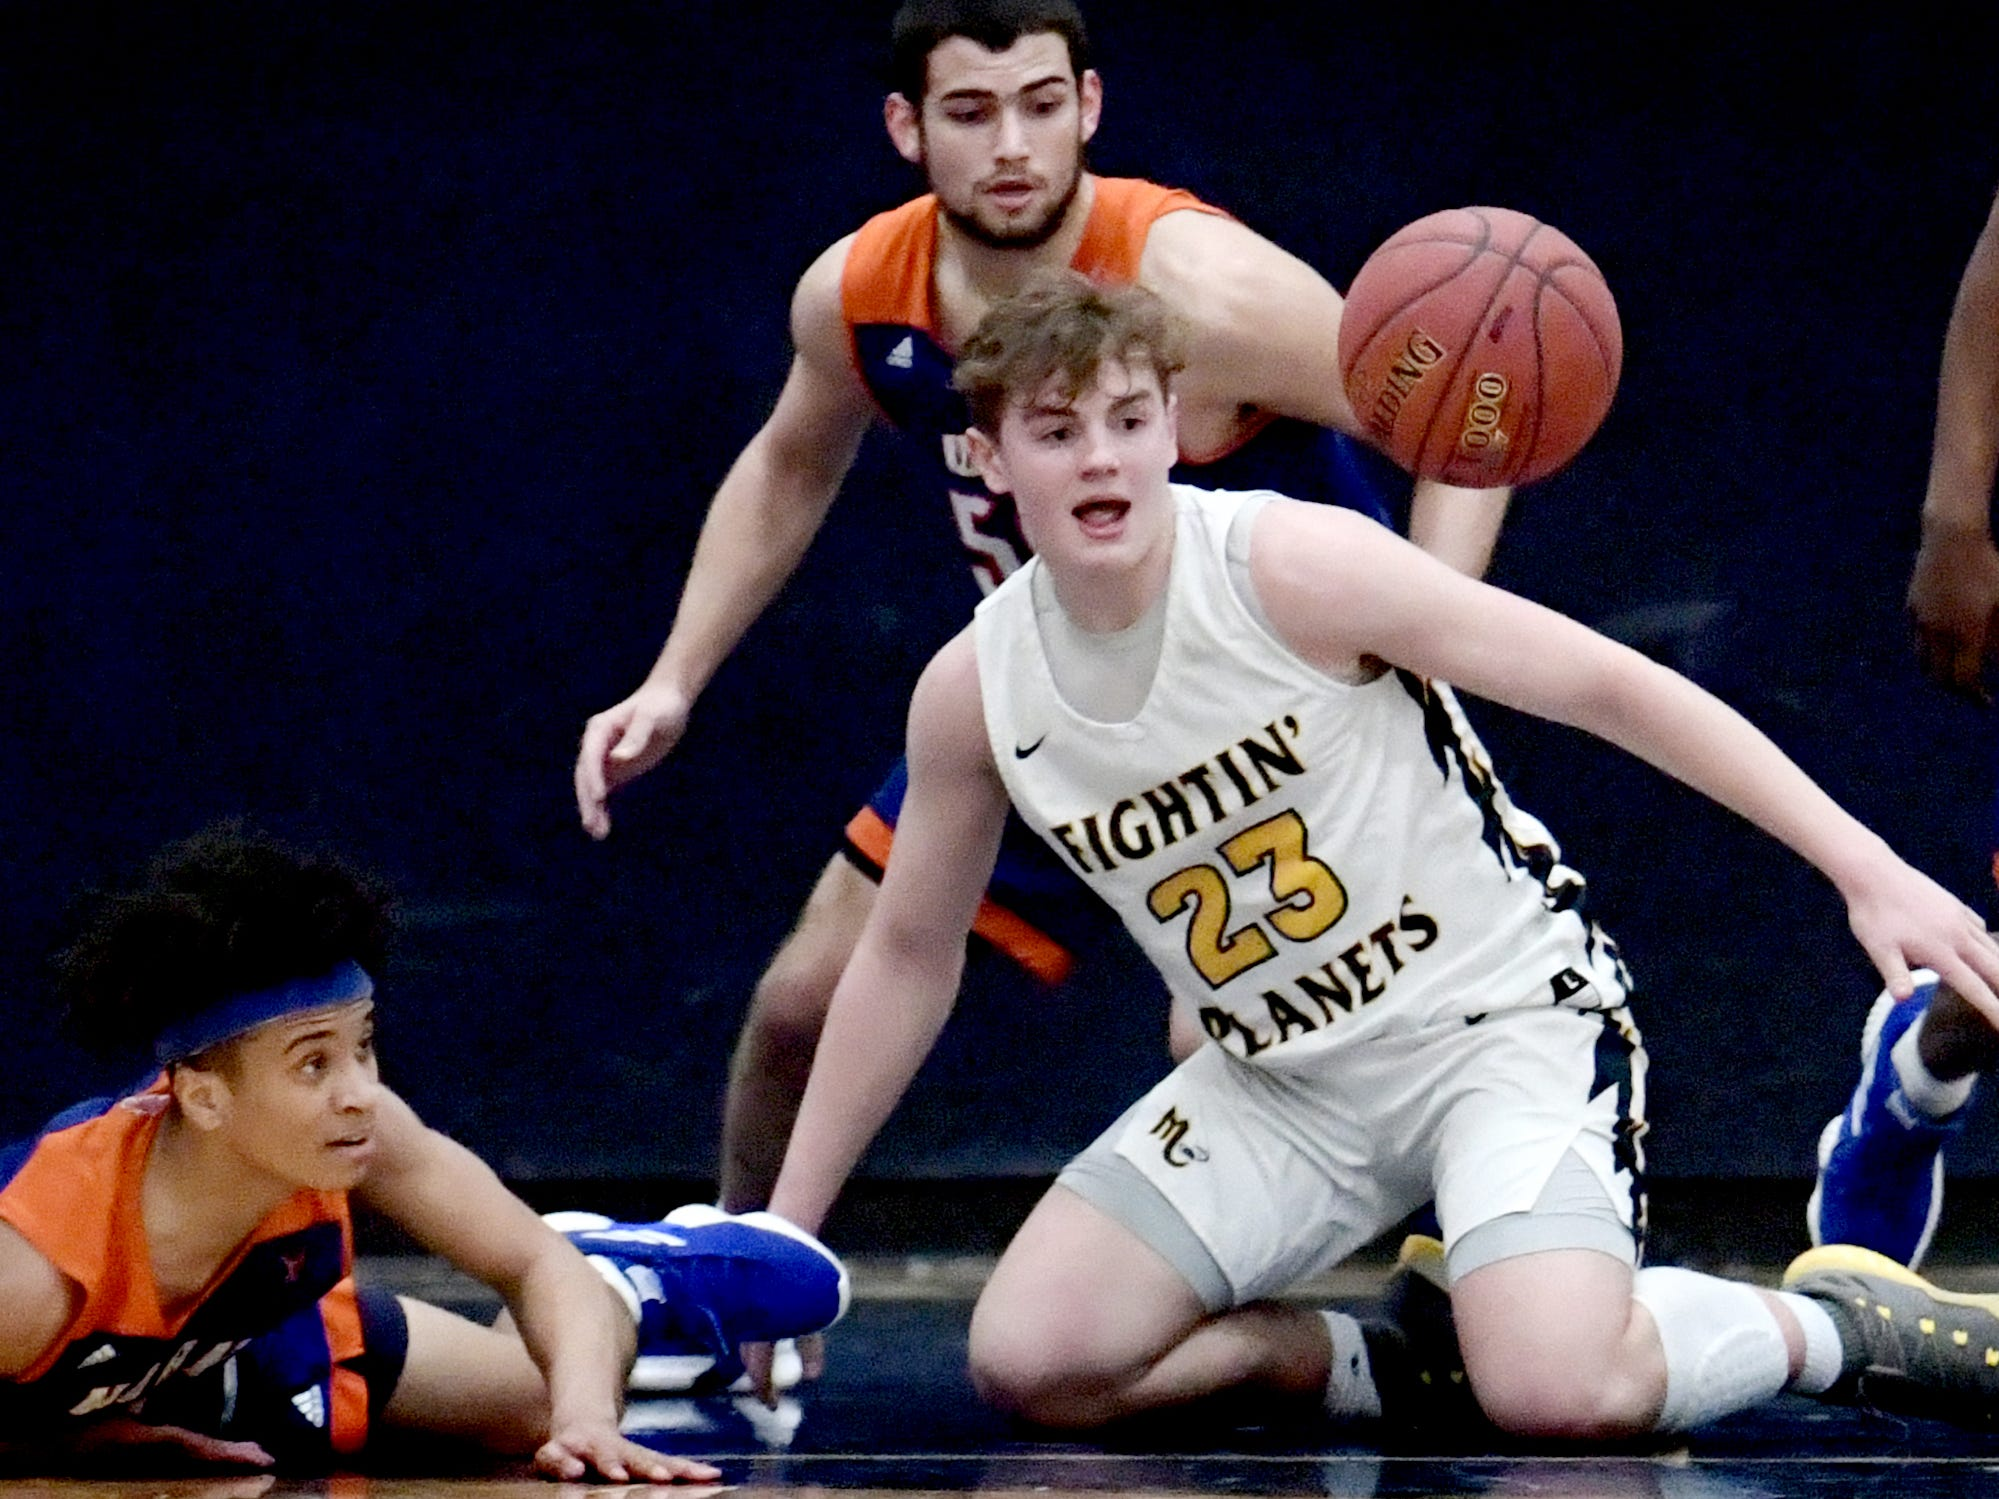 York High's Jaevon Woodyard, left, Seth Bernstein and Mars' Brandon Caruso battle for a loose ball during a PIAA Class 5-A second-round state boys' basketball playoff game at Holidaysburg High School in Blair County Tuesday, March 12, 2019. York lost 60-59. Bill Kalina photo